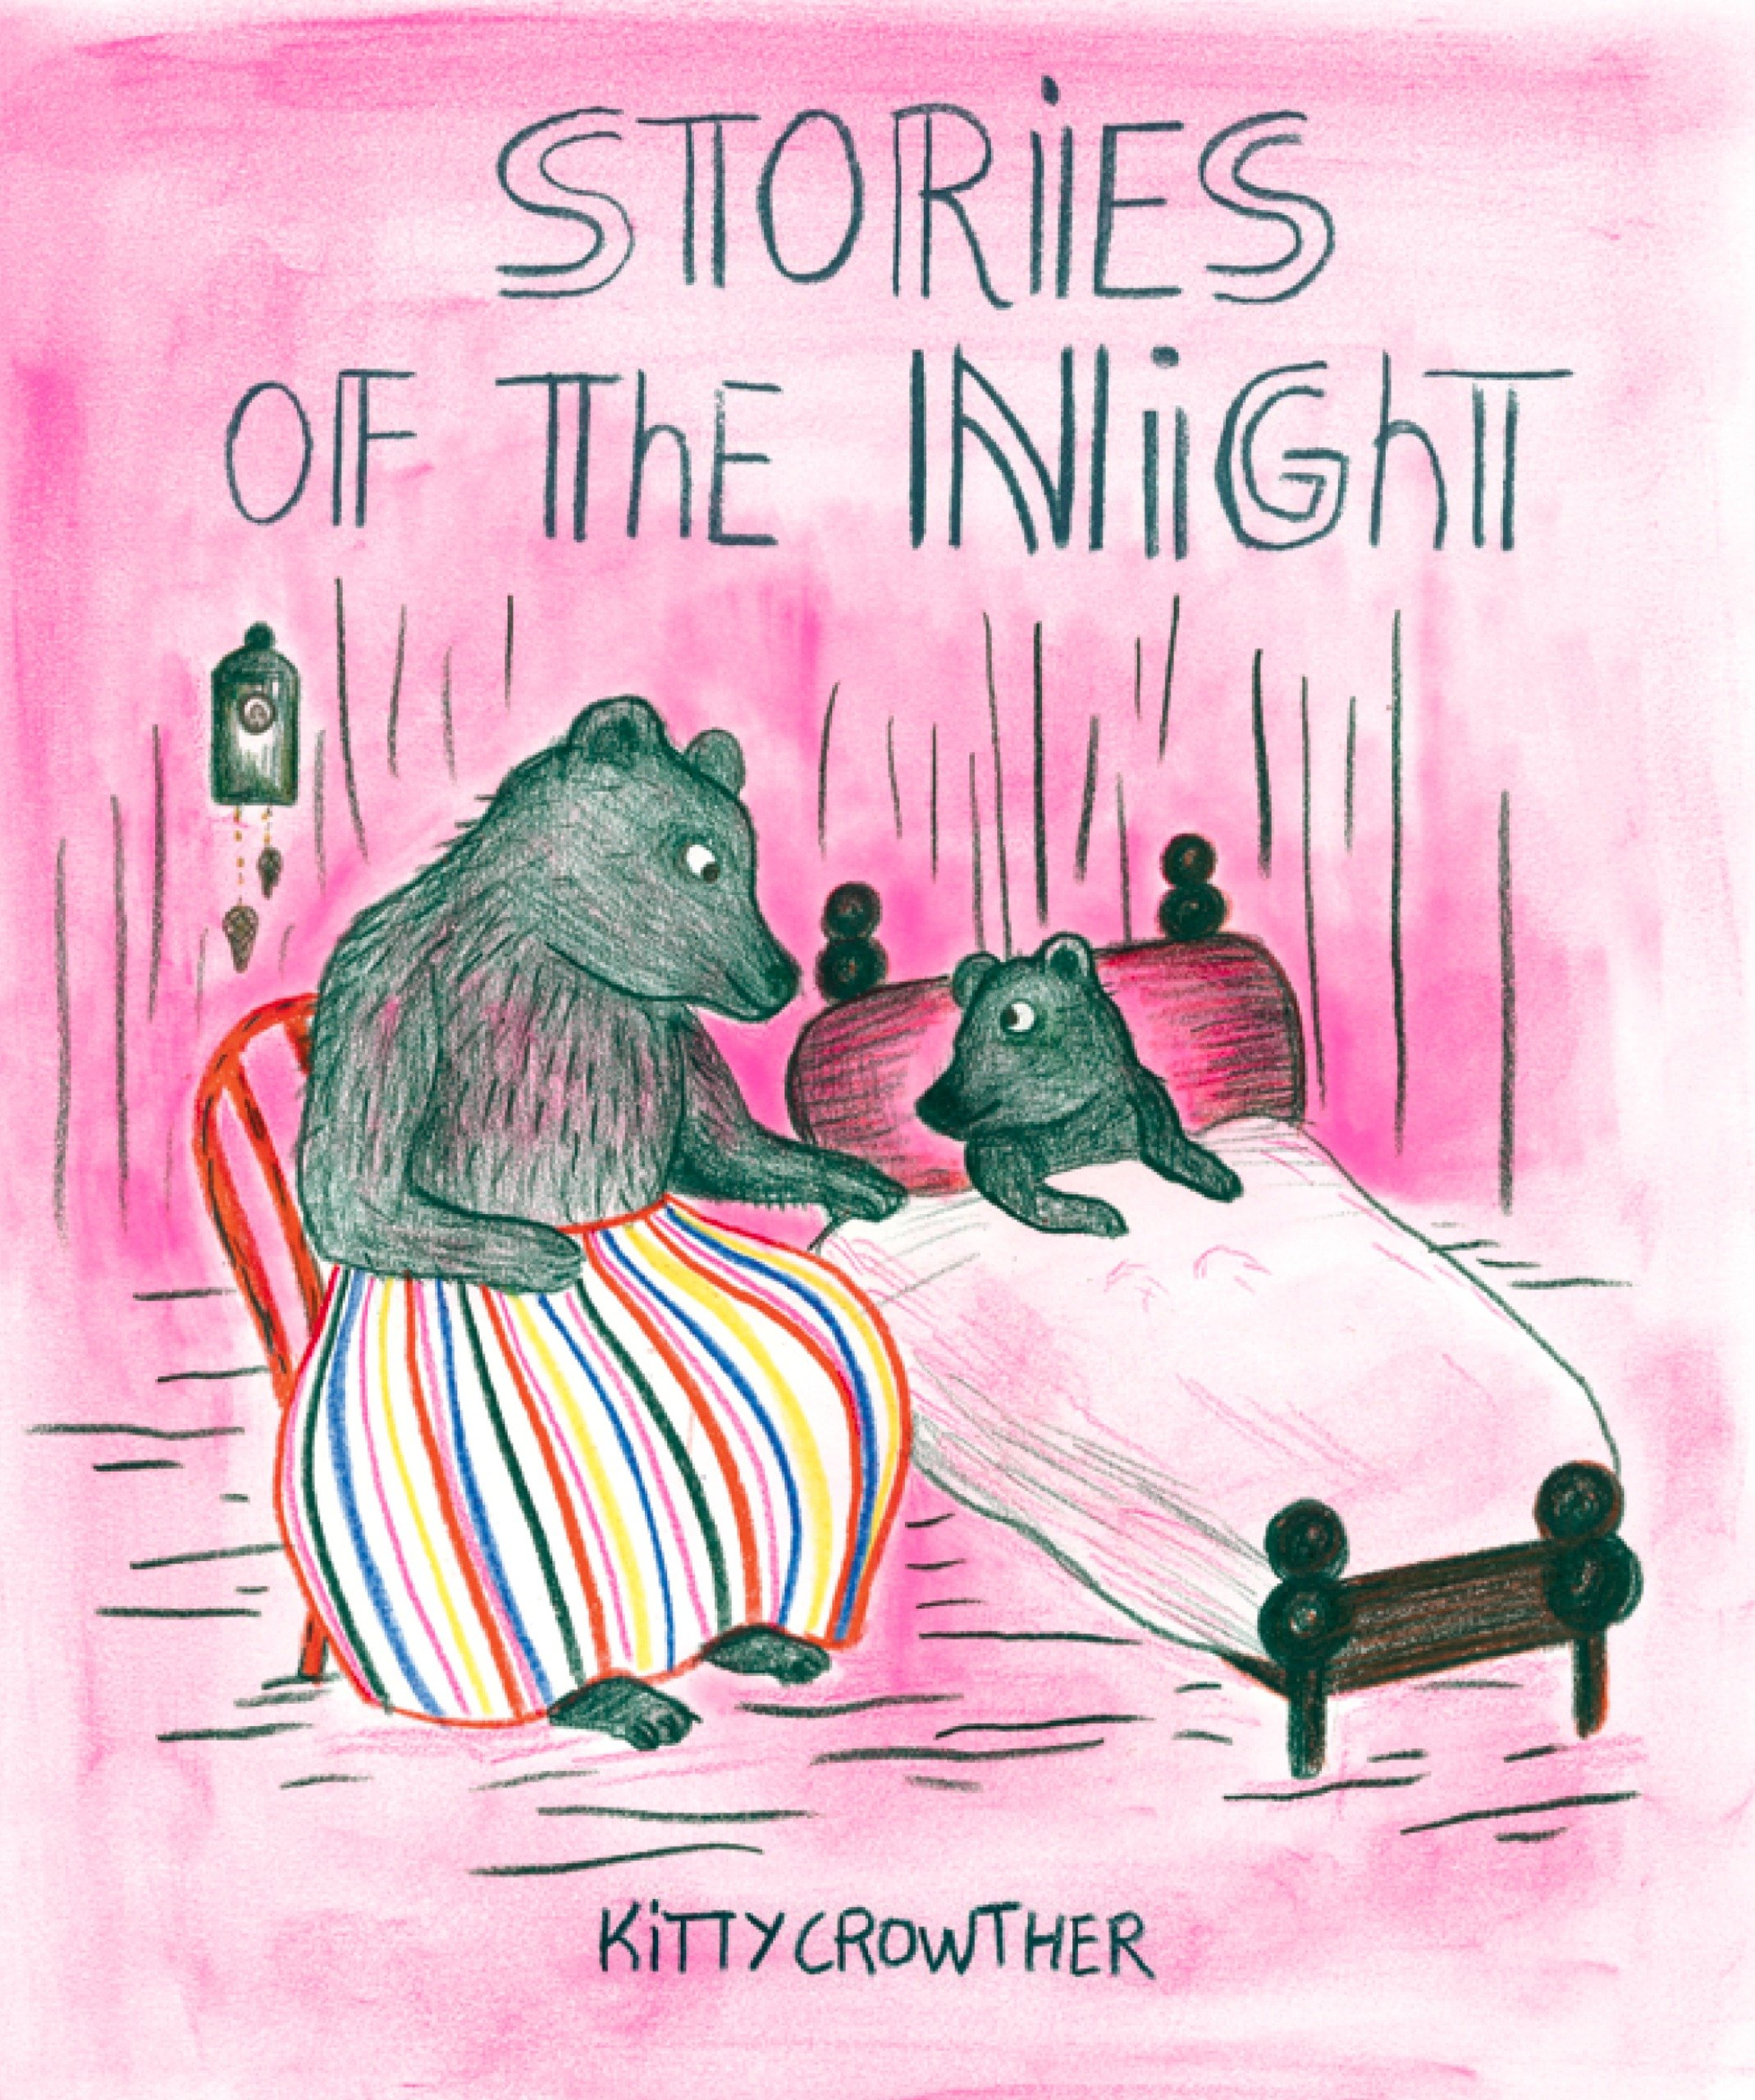 stories-of-the-night